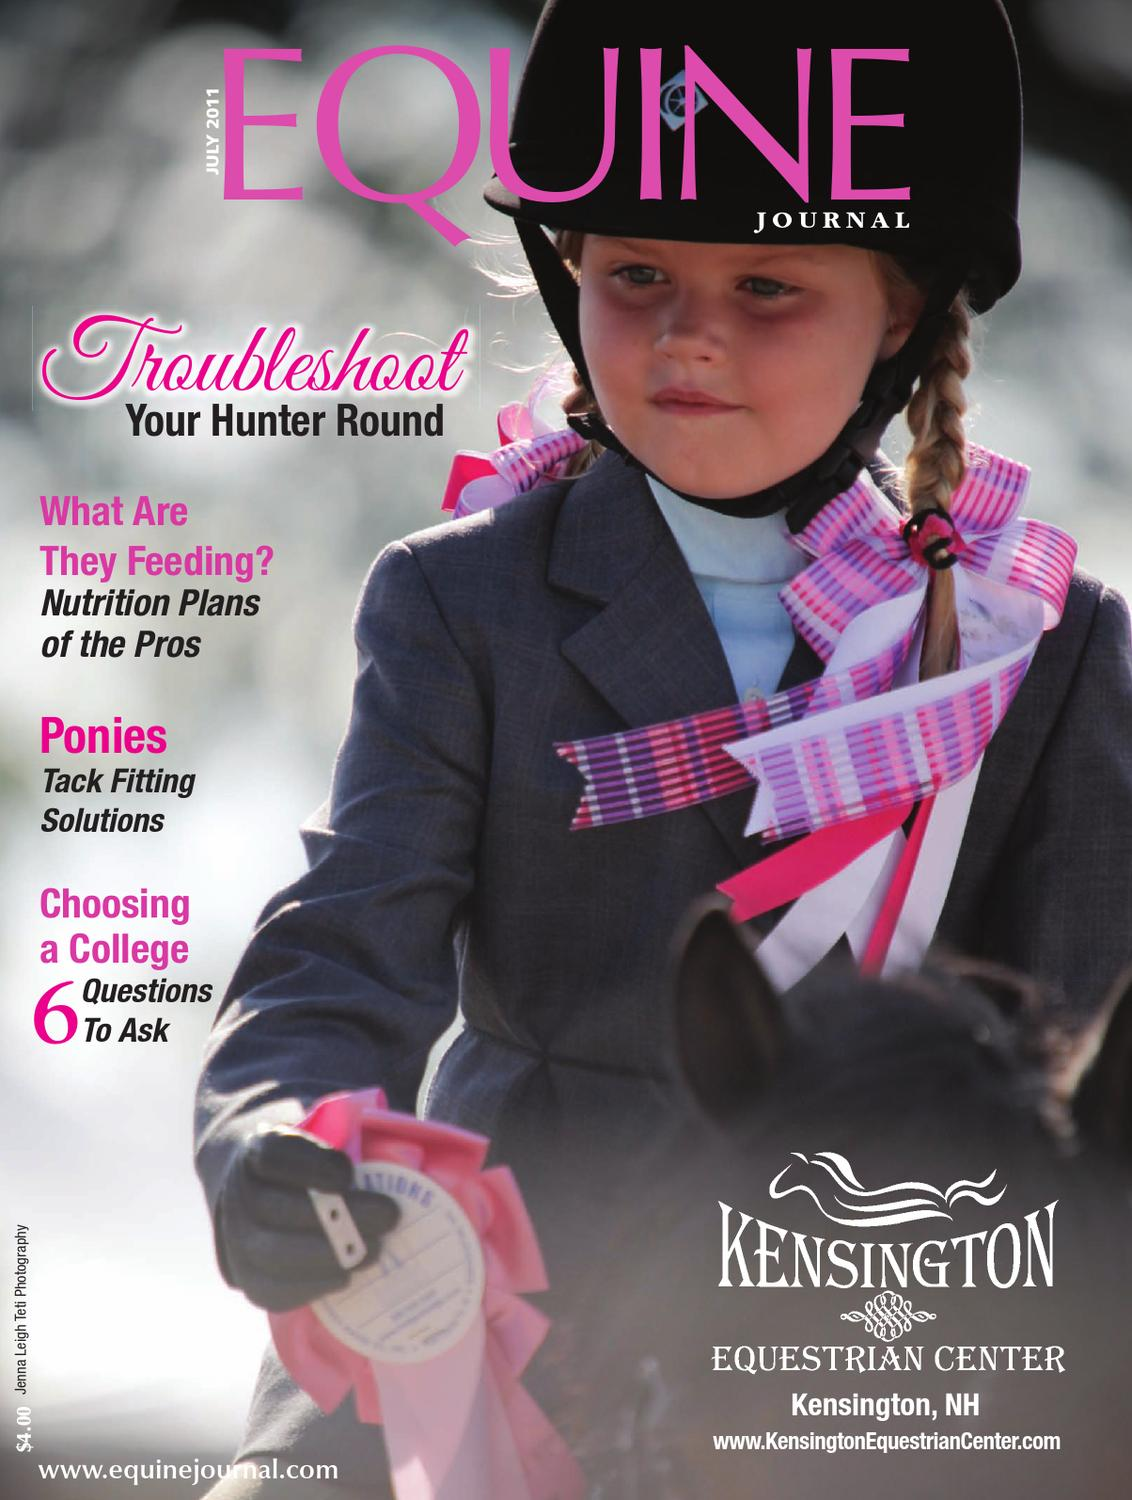 Equine Journal (July 2011) by Equine Journal - issuu 135c65a8a